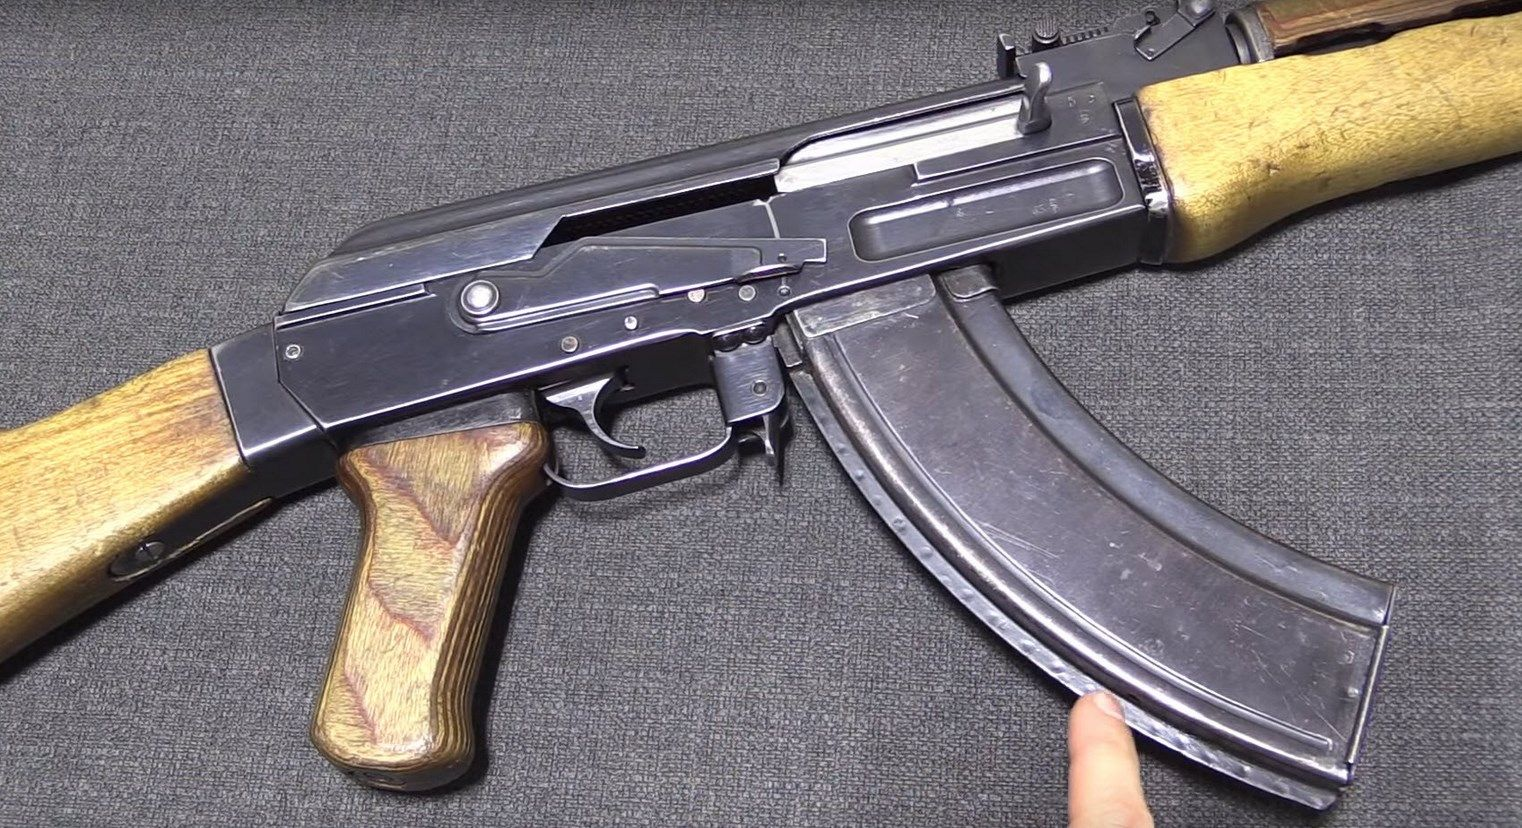 Signal Makarov MP-371 pistol: technical characteristics, differences from combat